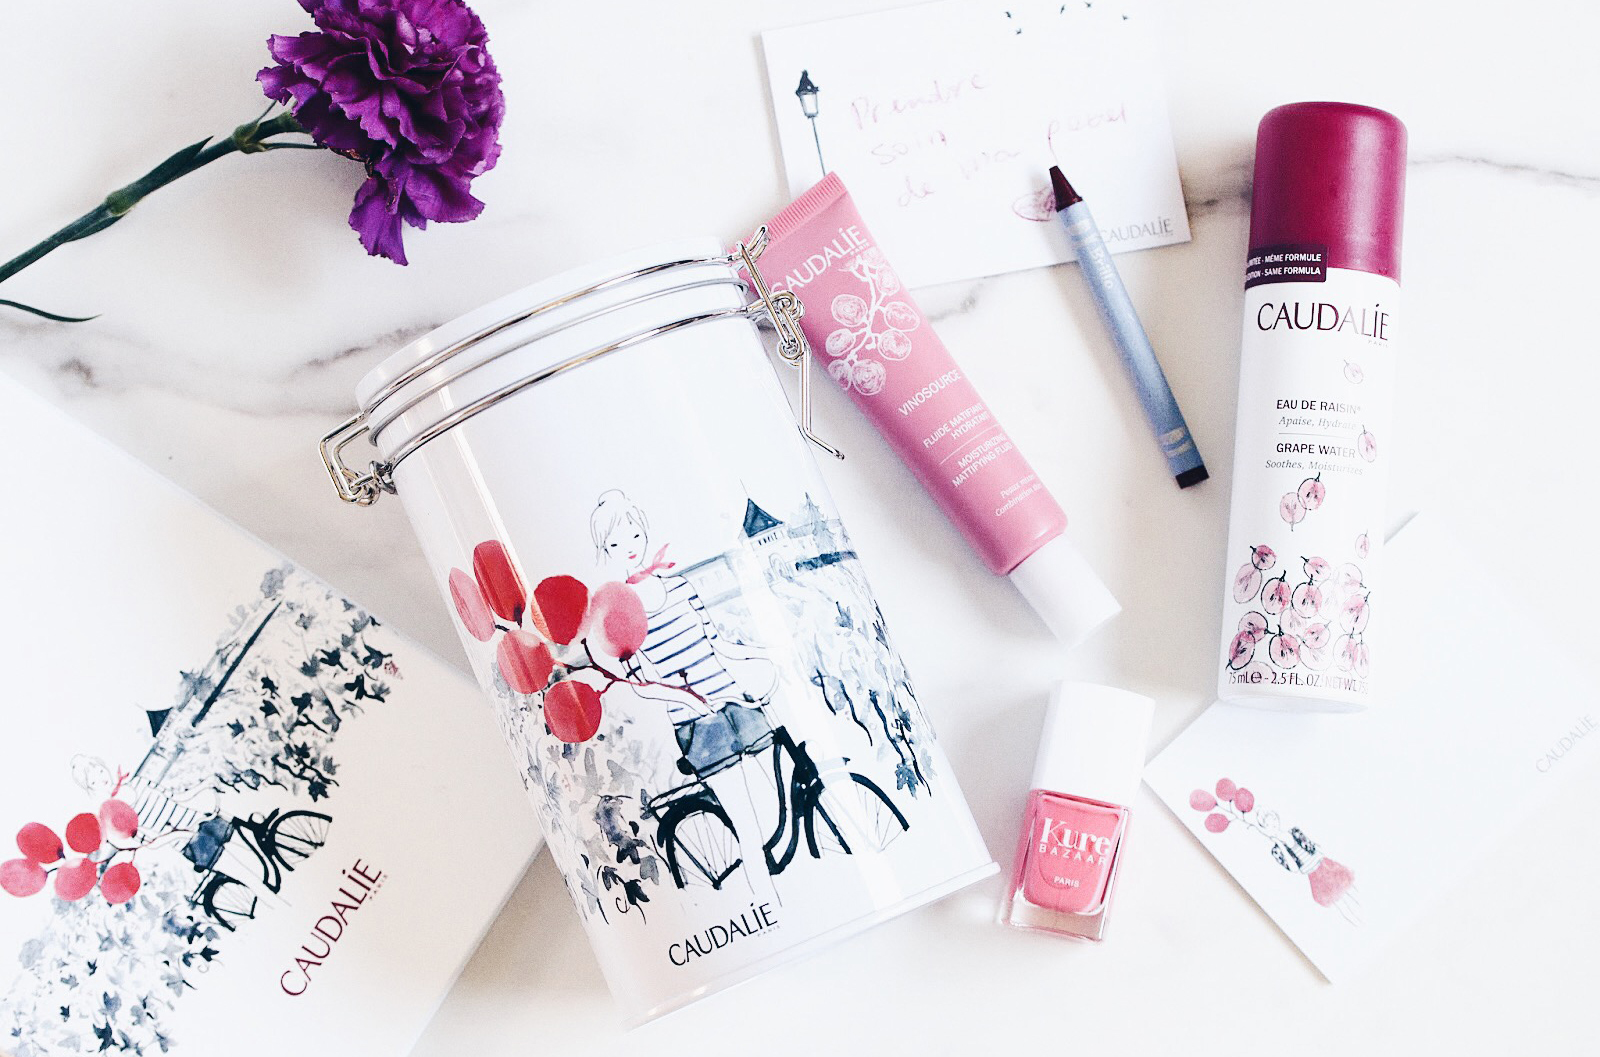 caudalie coffret vinosource avis test